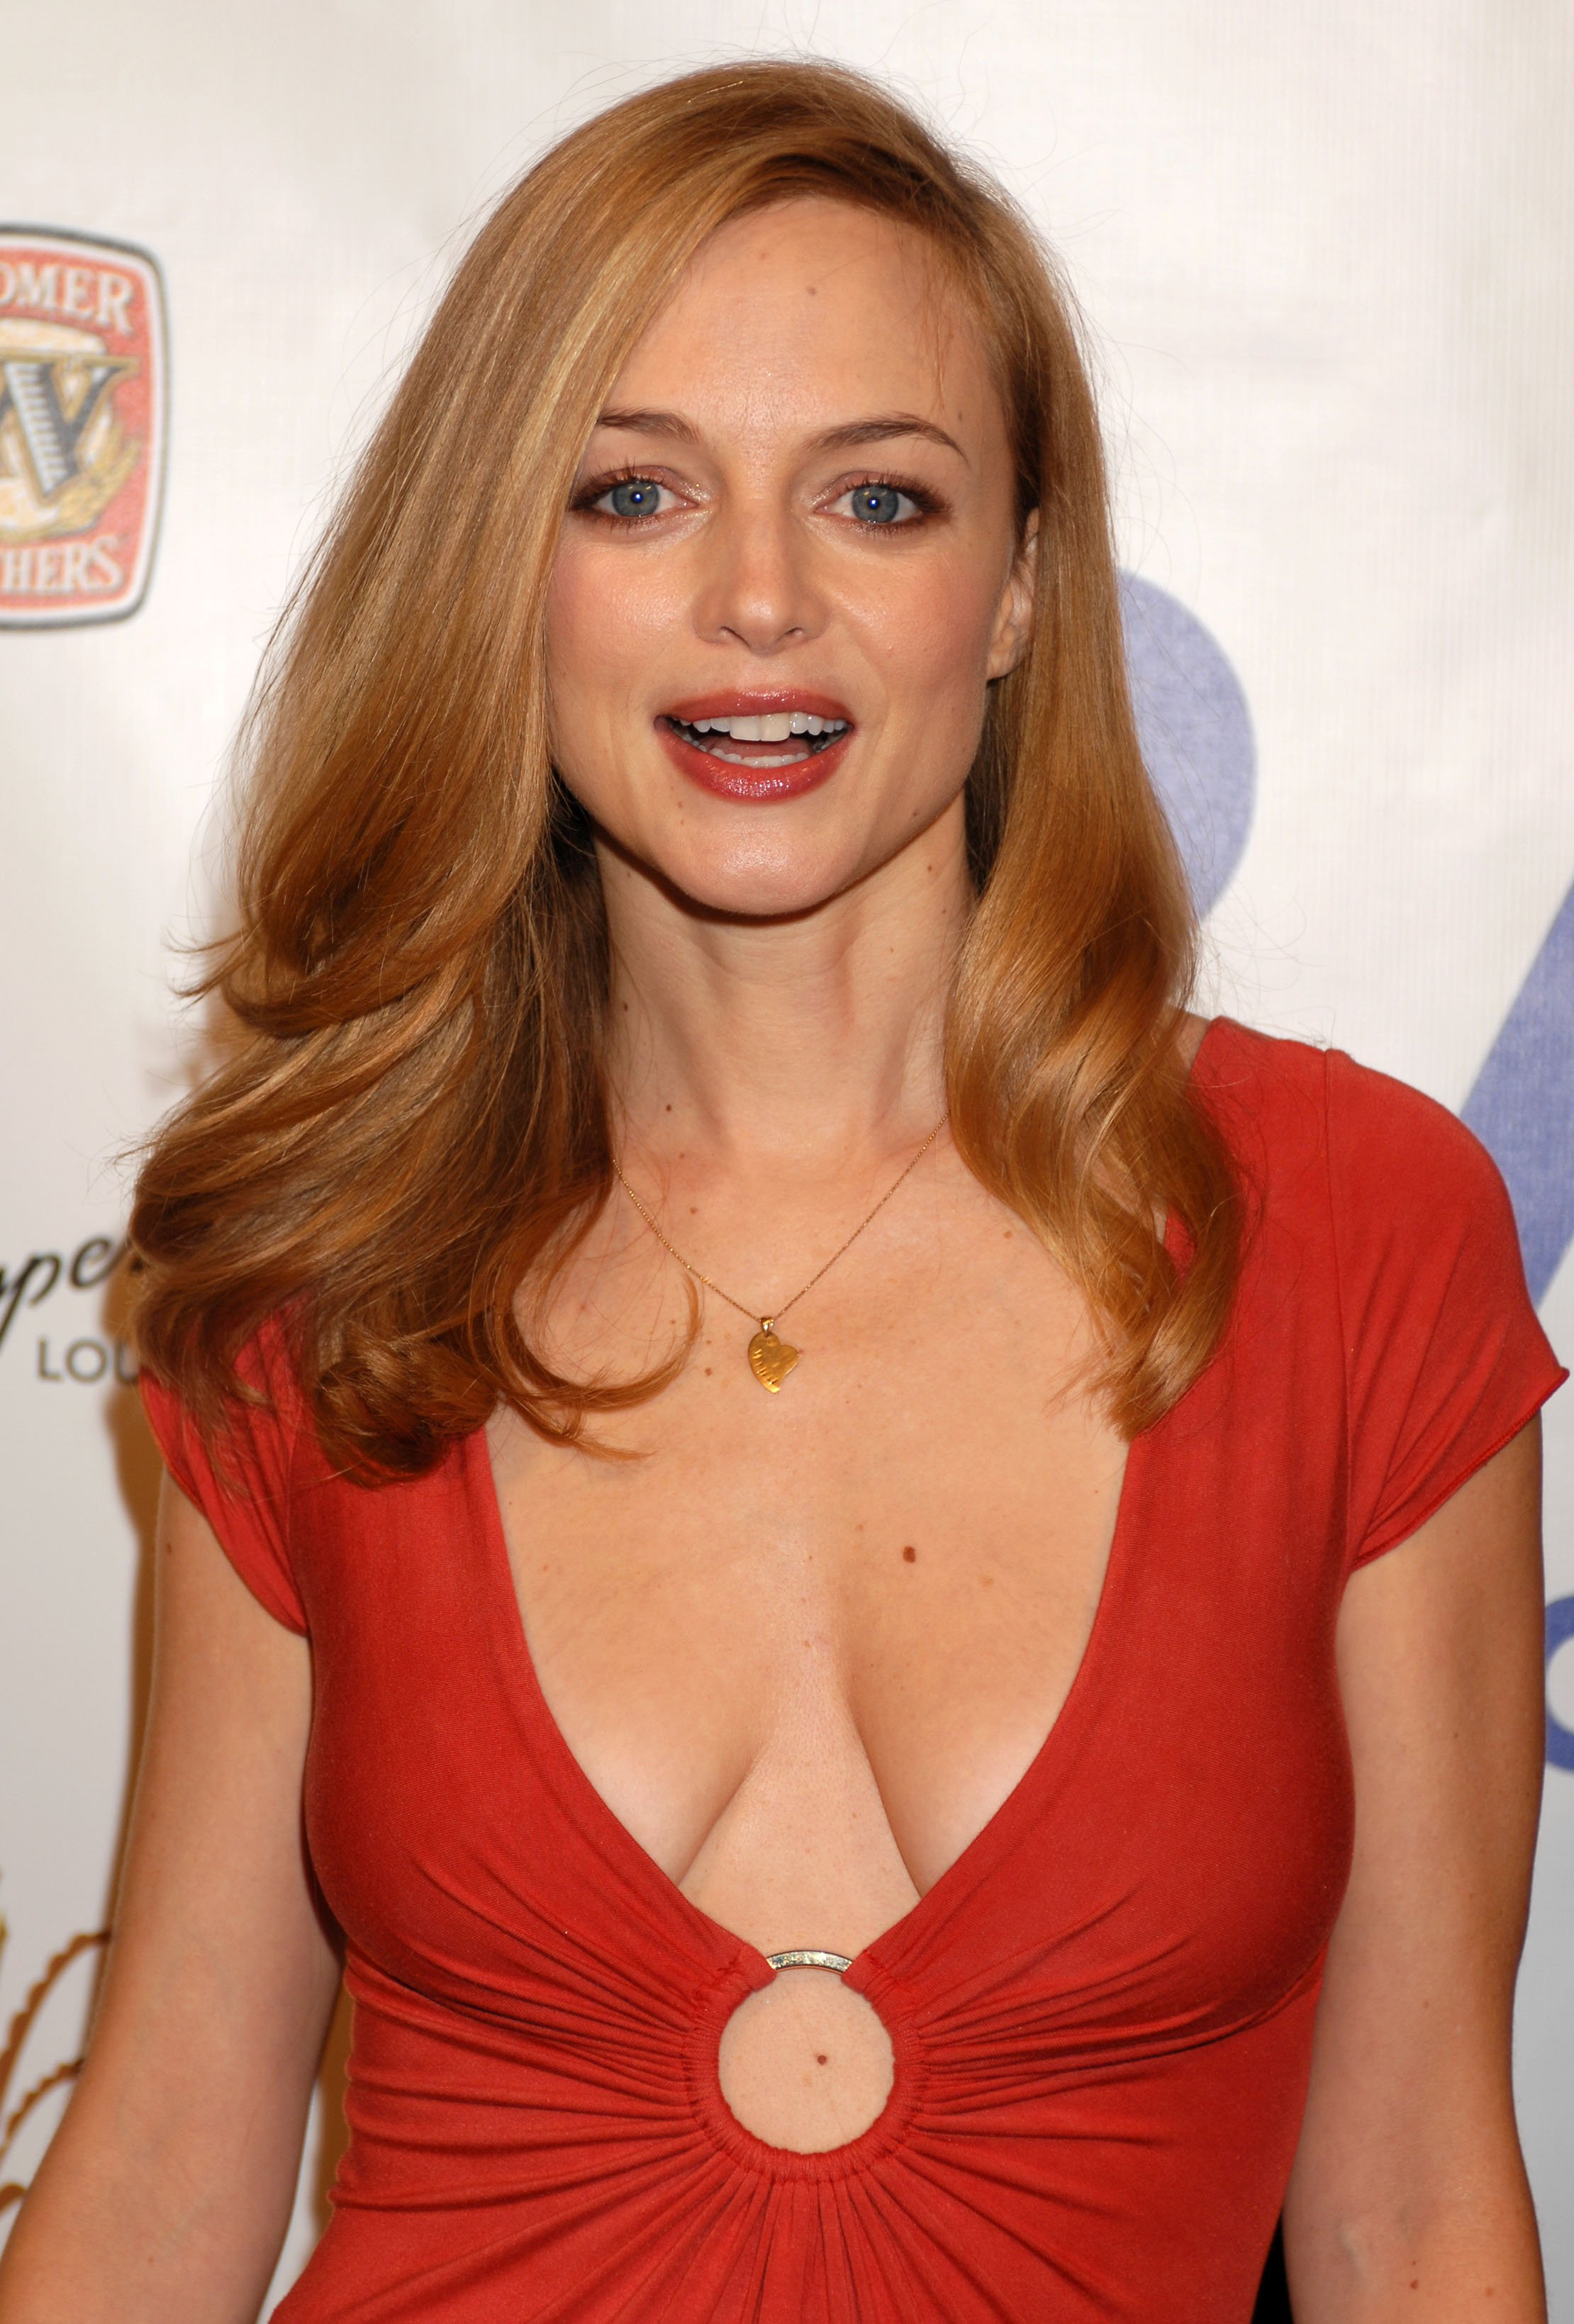 Heather Graham Hot heather graham without makeup - hate wait